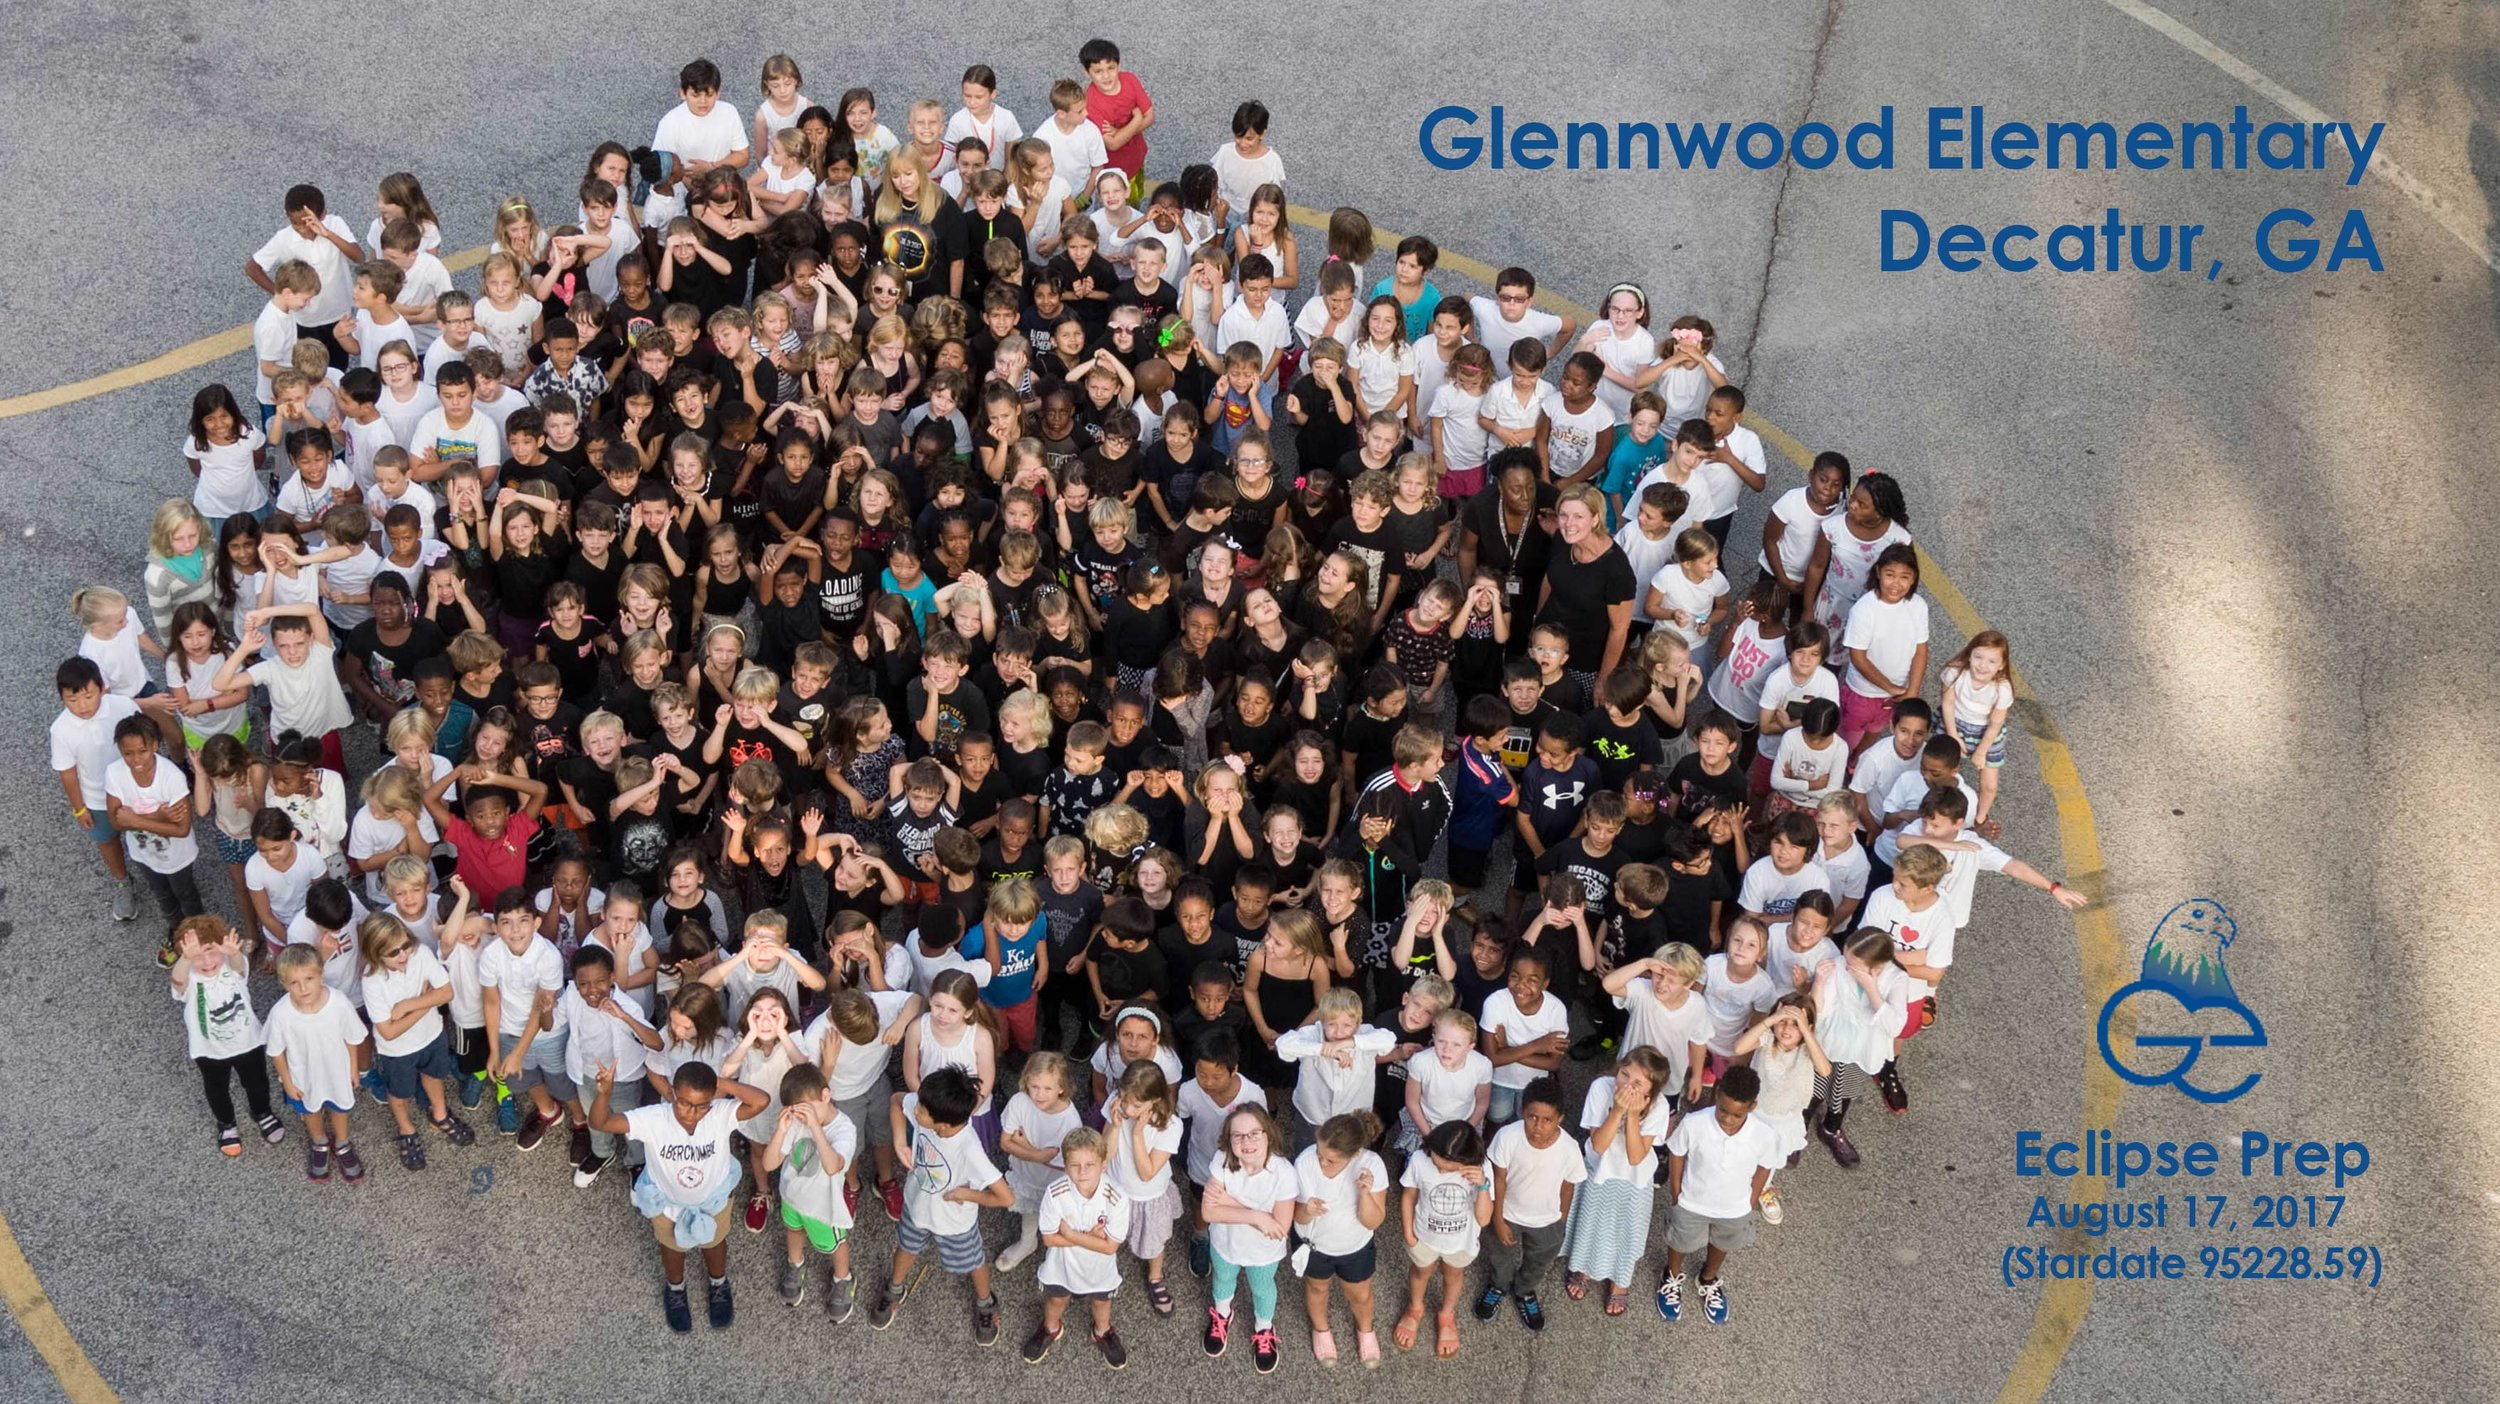 Glennwood students mirrored the solar eclipse. Drone photo by Glennwood parent, Soren Christiansen.  Soren@skyseevideo.com